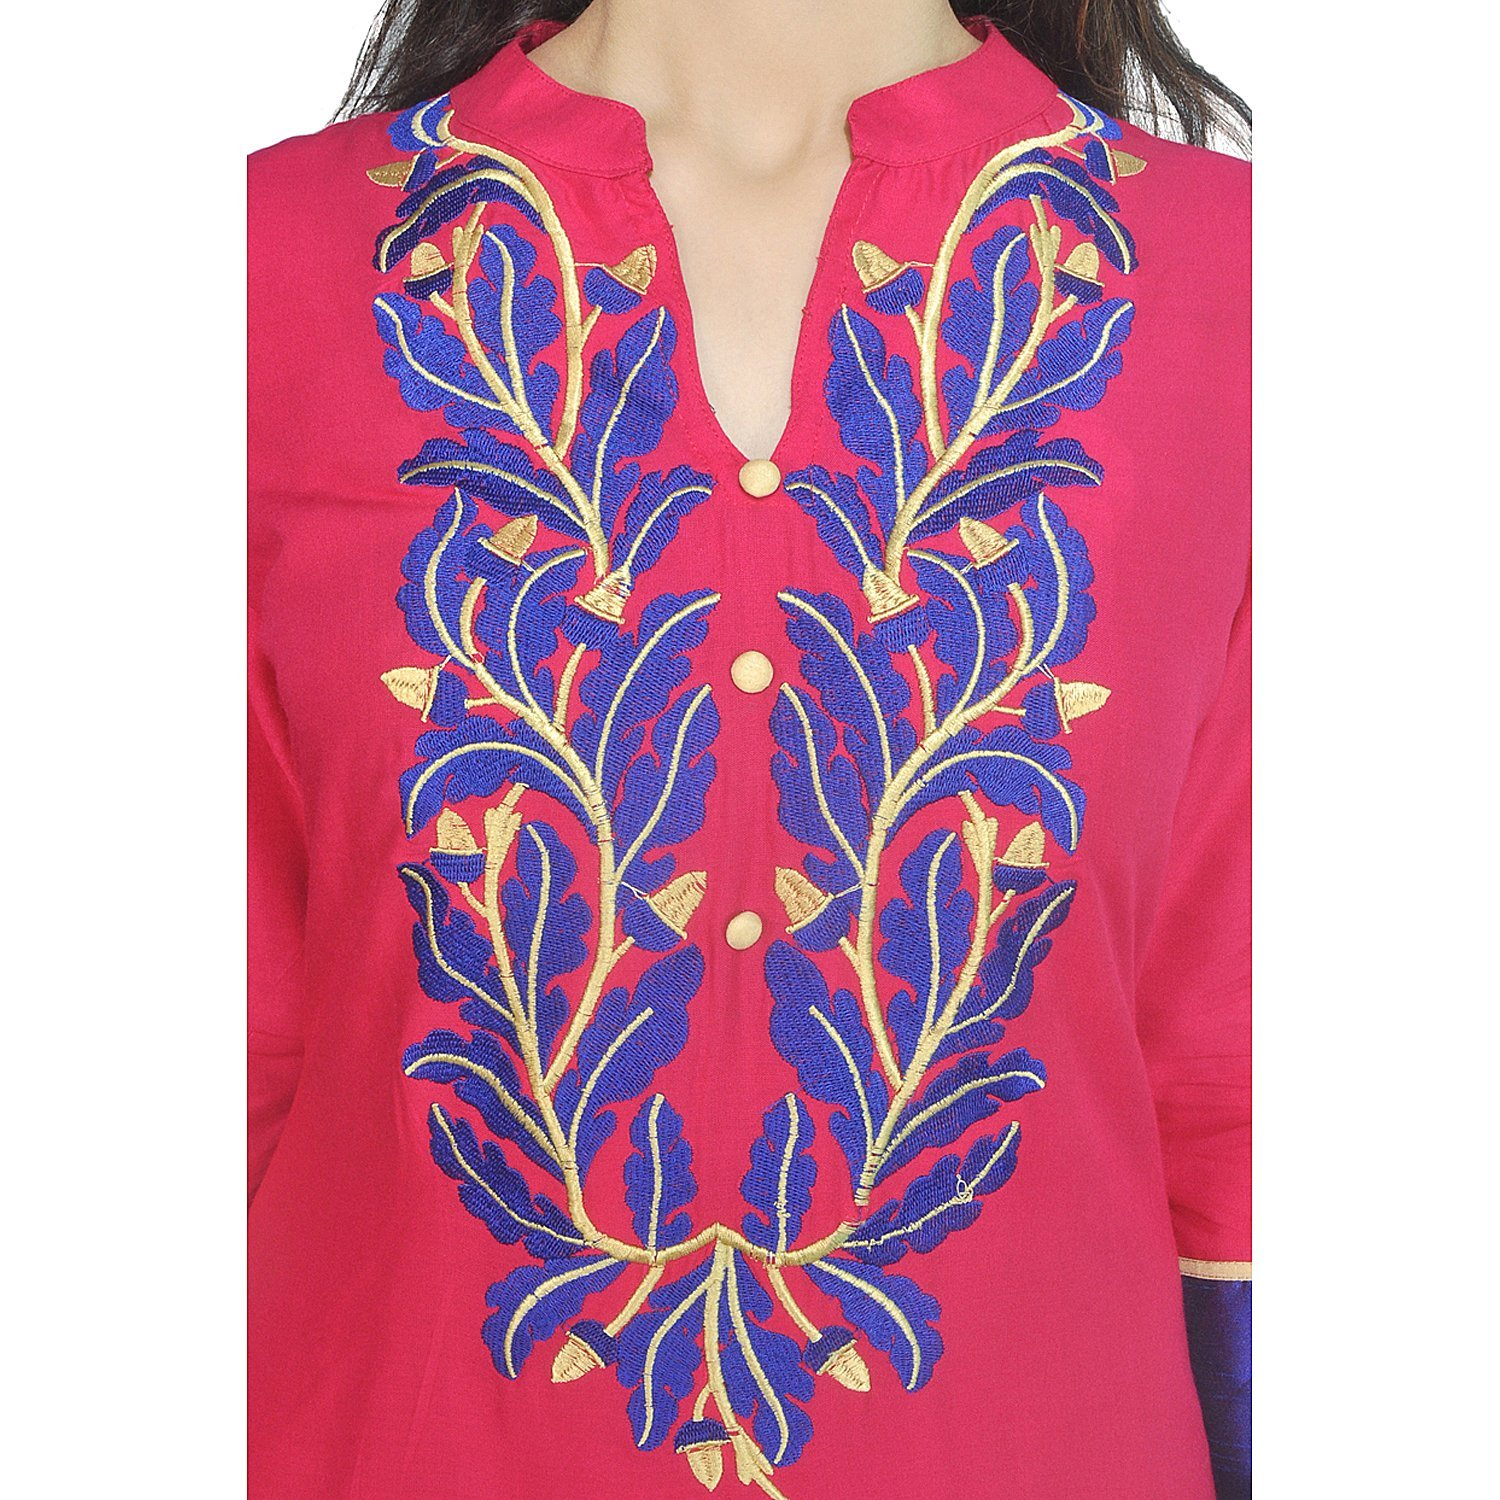 Chi Chi Chichi Women 3/4 Sleeve Tunic Top Embroidered Kurti Blouse by CHI (Image #4)